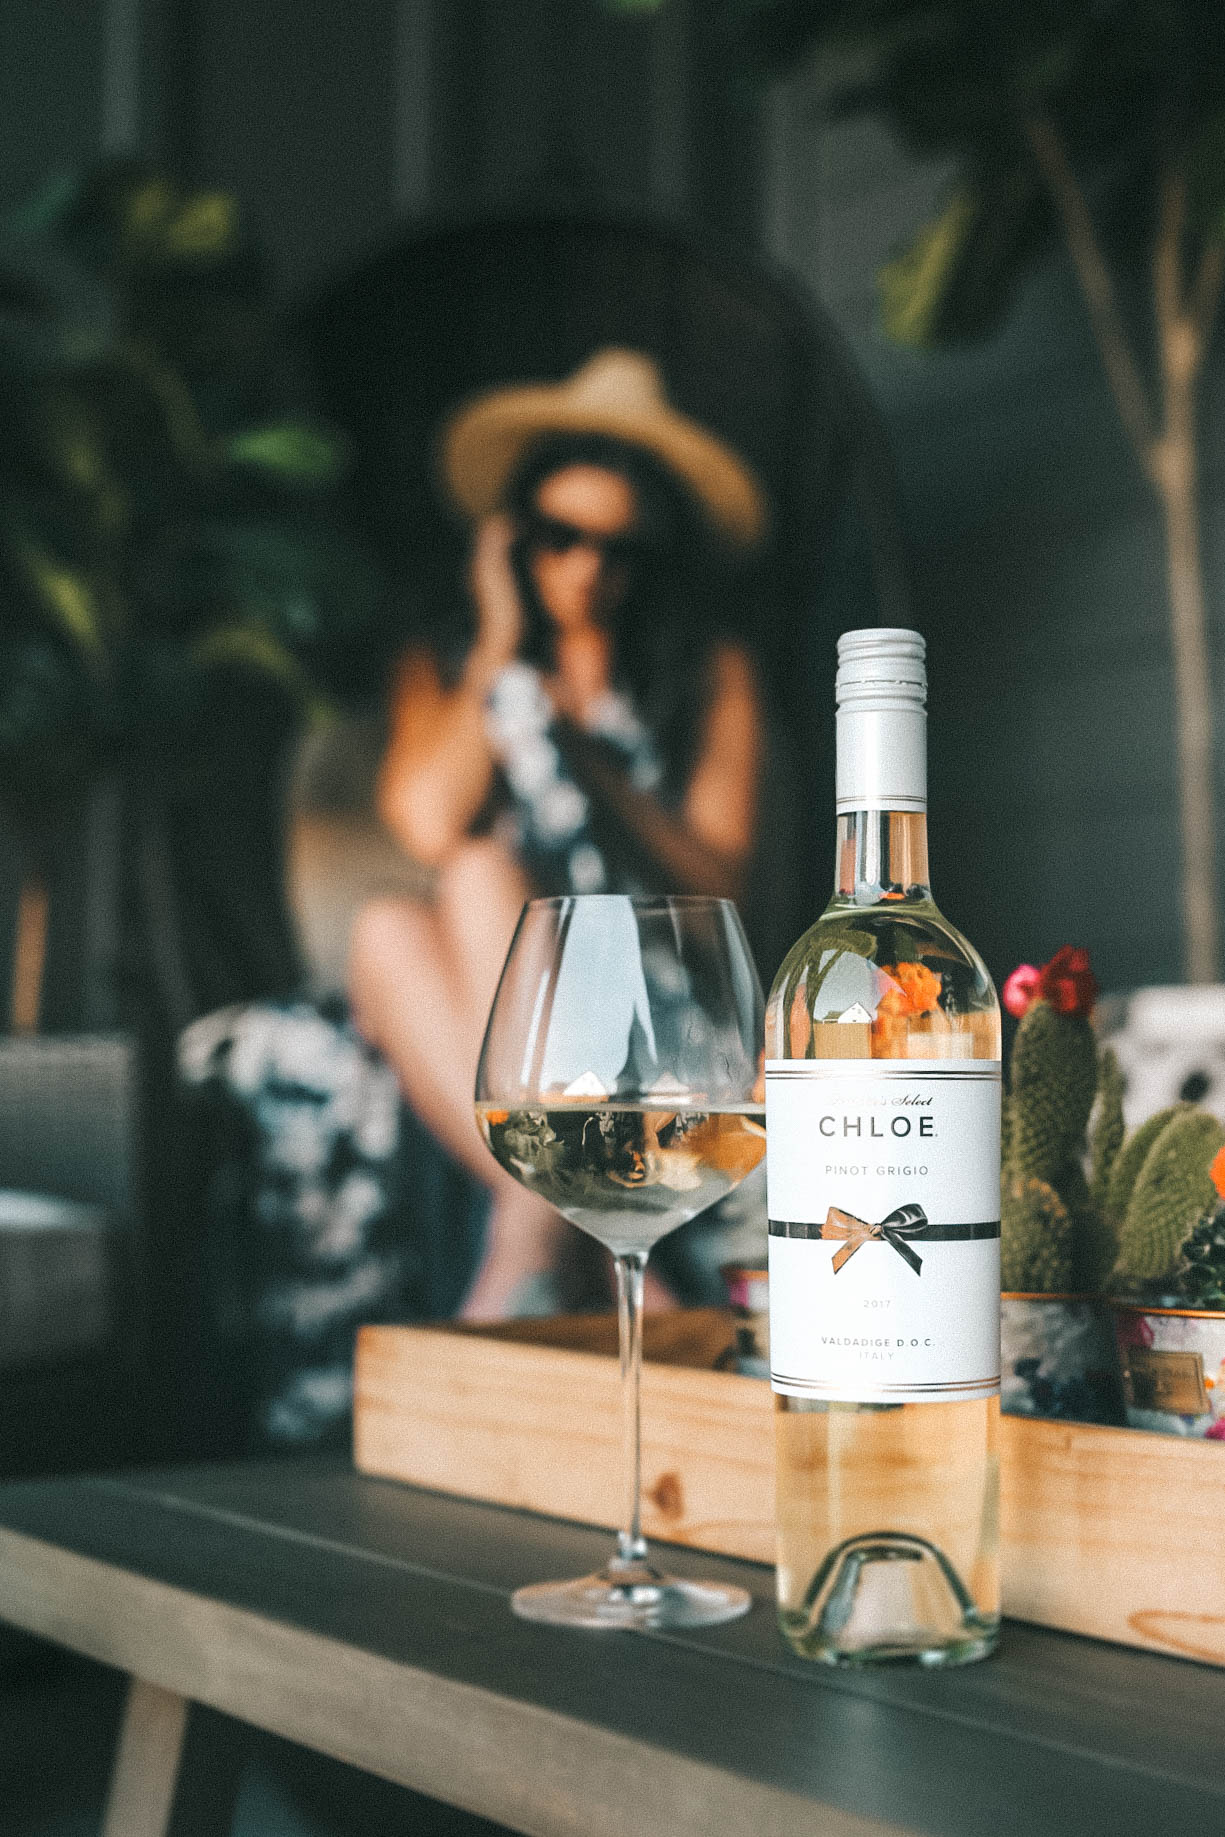 Celebrating Women in Film with Chloe Wine Collection by popular Austin life and style blog, Dressed to Kill: image of a woman sitting behind a bottle of Chloe pinot grigio wine and an empty wine glass that are resting on a wooden coffee table.